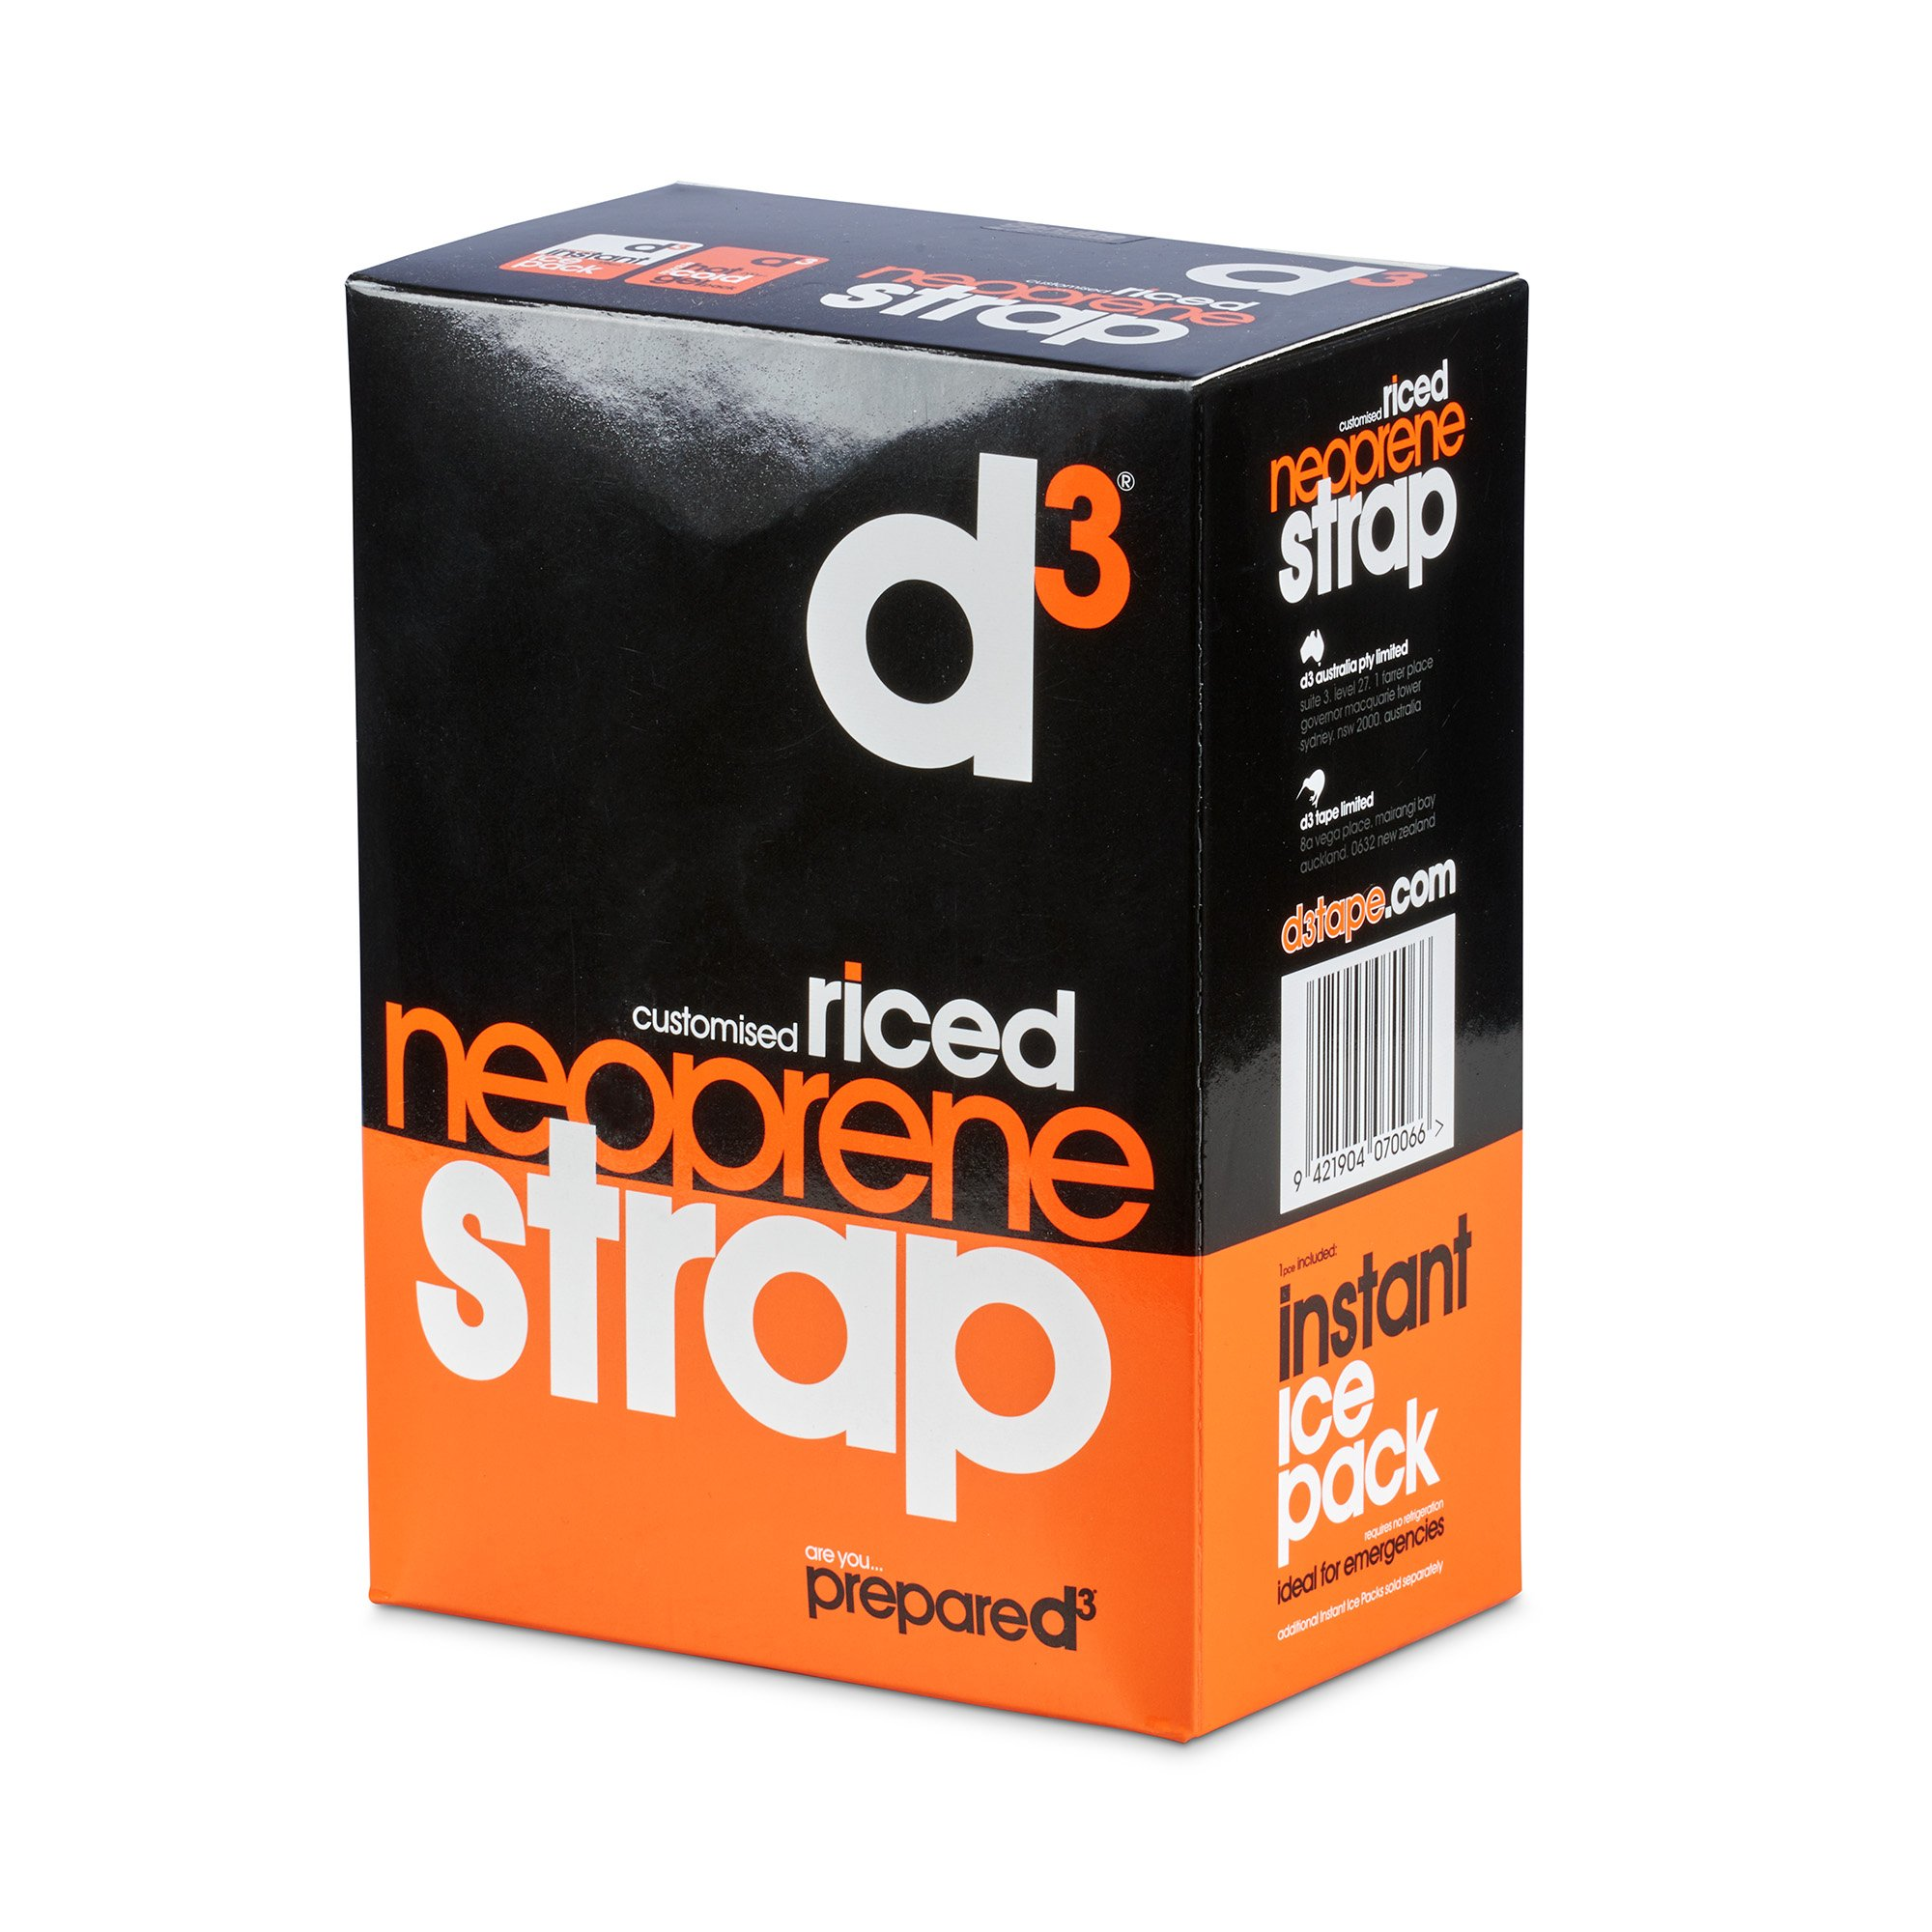 D3 RICED NEOPRENE STRAP(with 2 instant, 1 hot/cold)